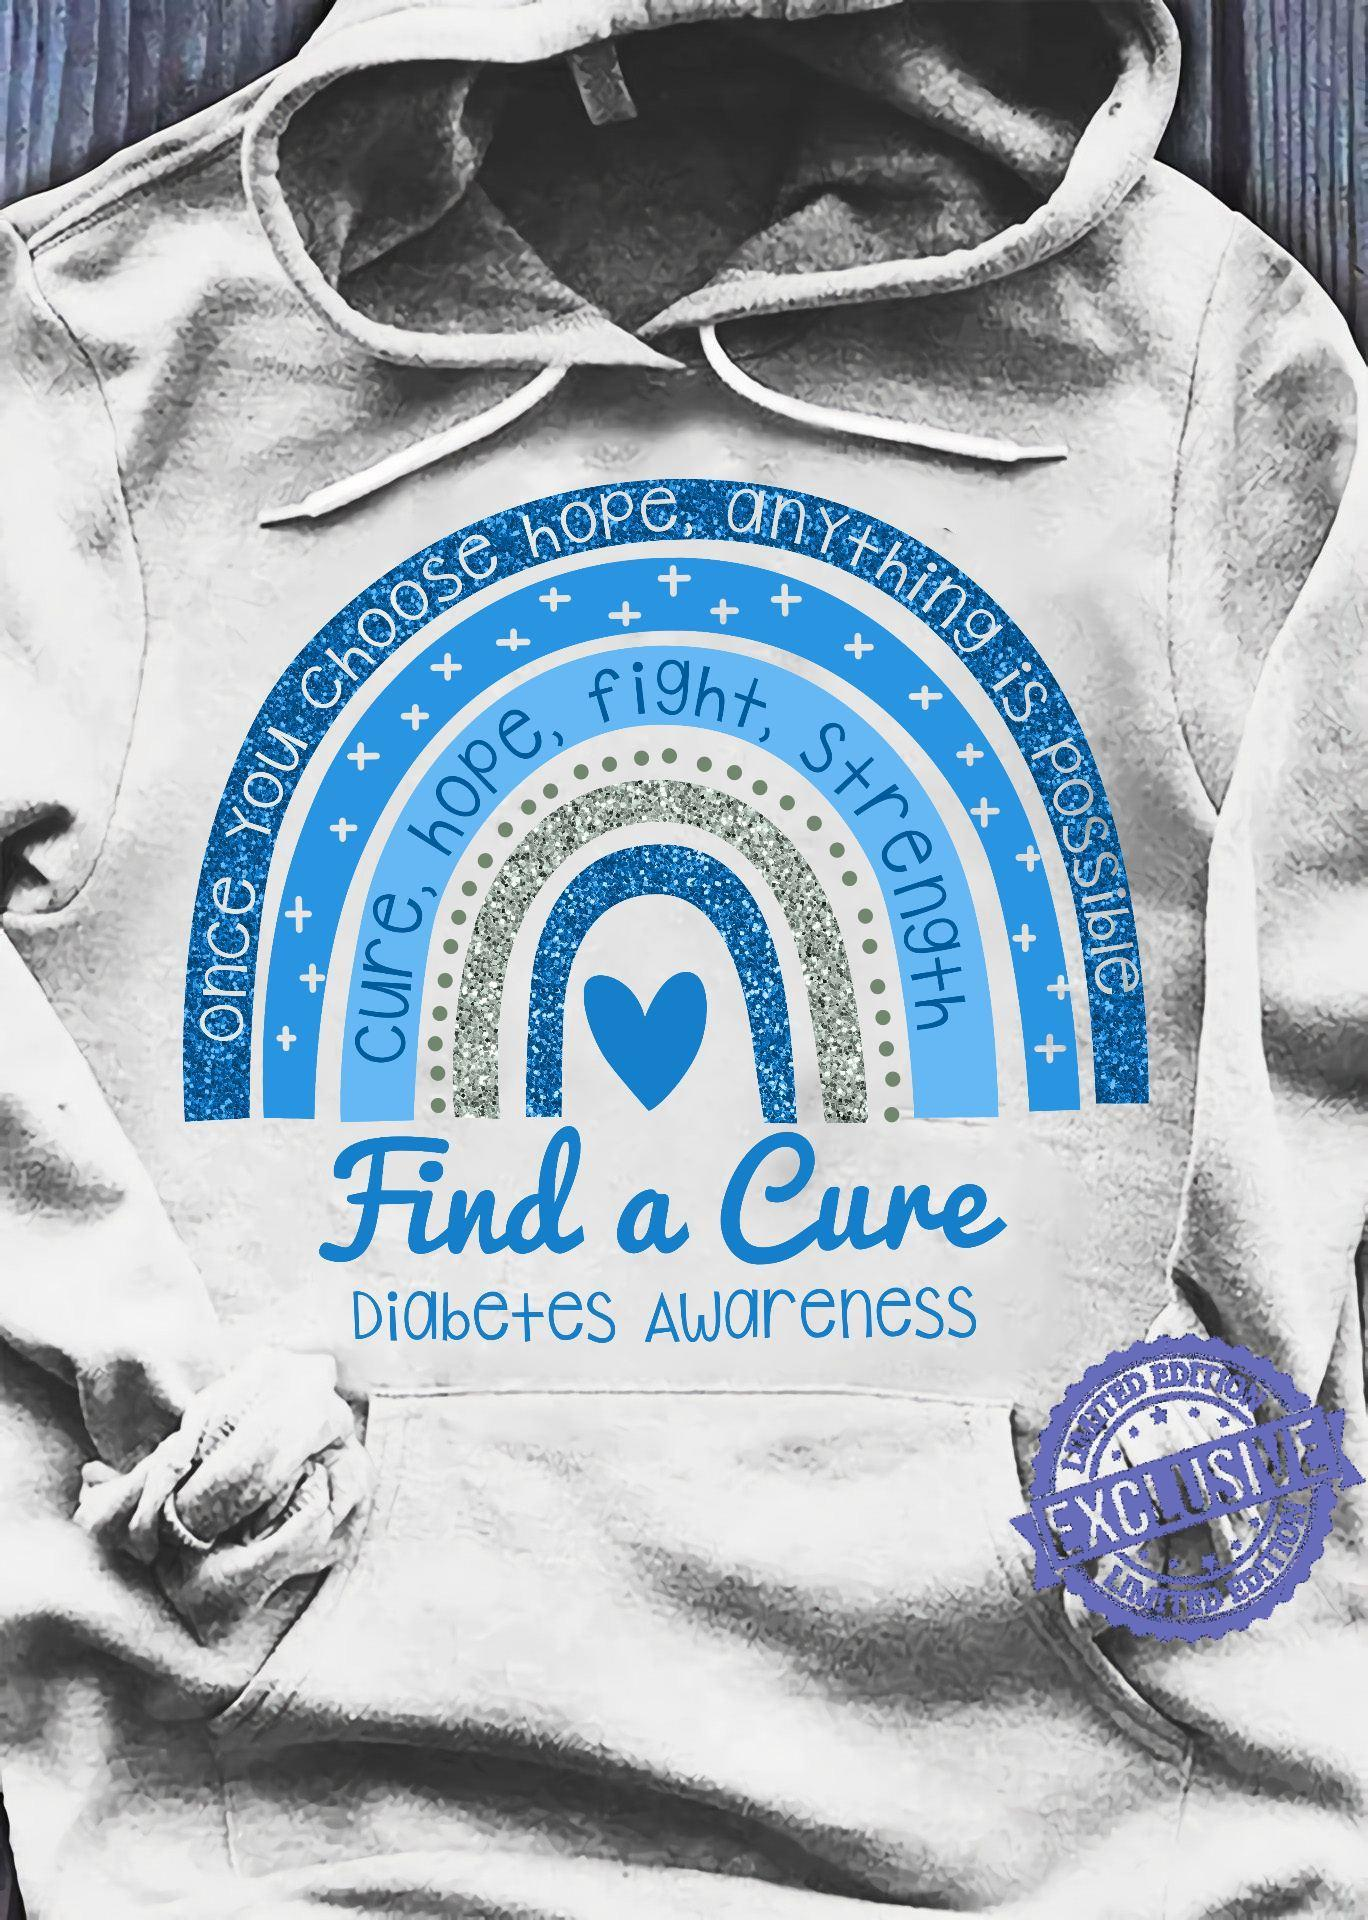 Once you choose hope any thing is possible cure hope fight strength find a cure diabetes awareness shirt